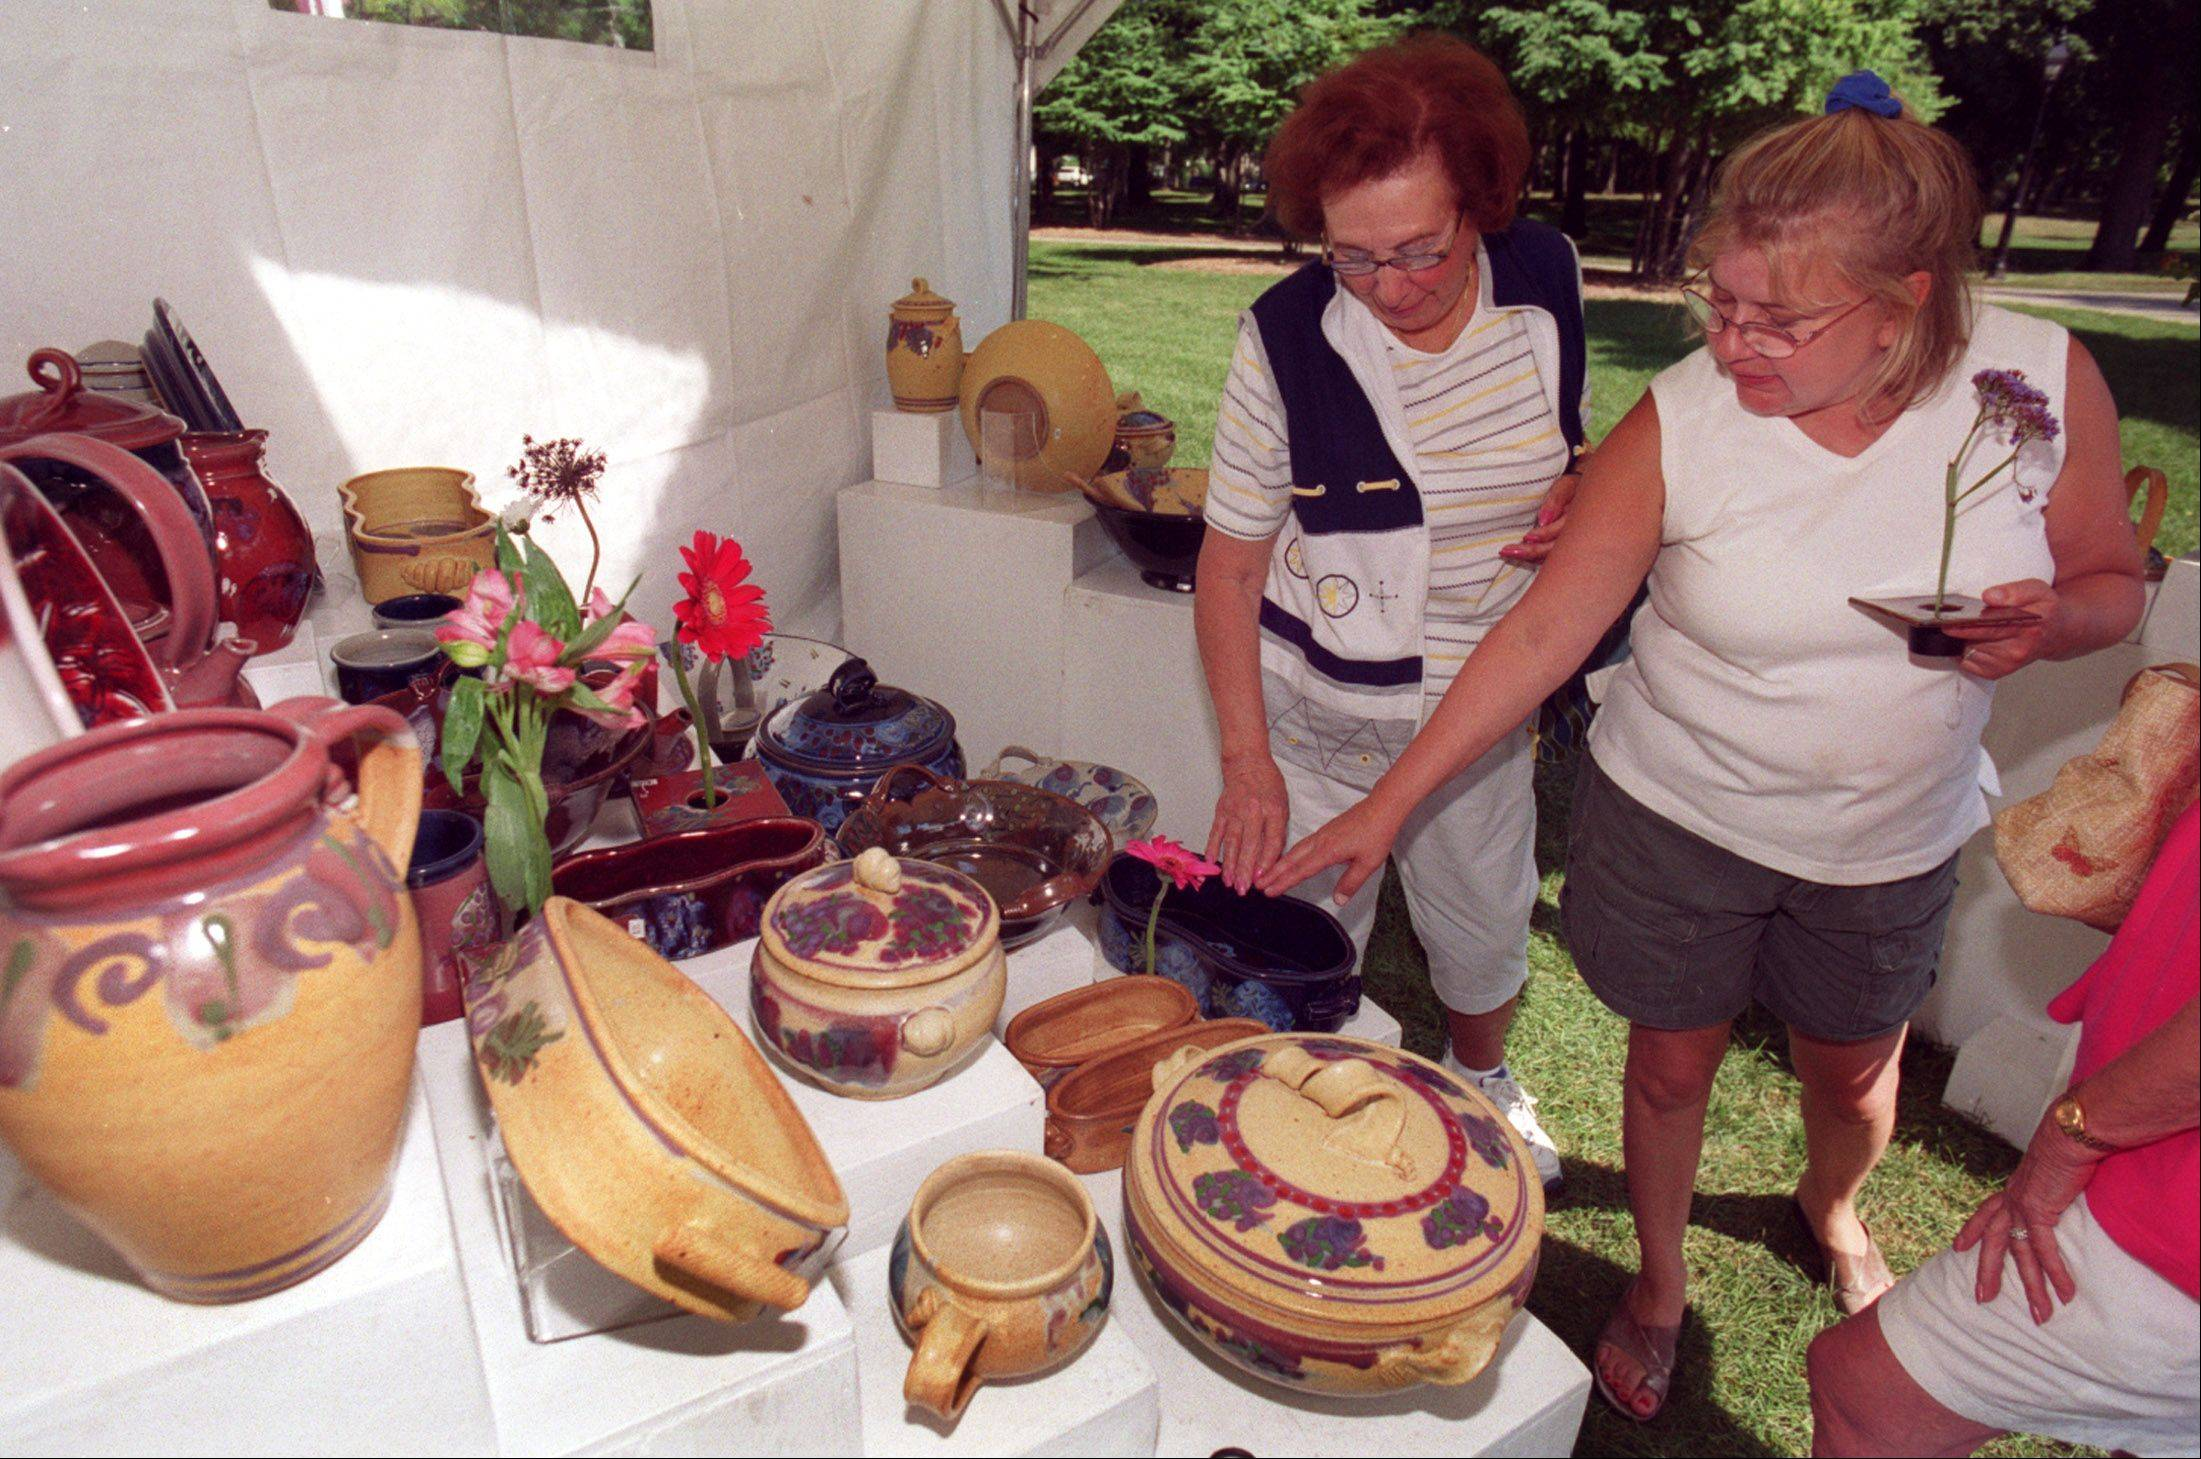 The Glen Ellyn Festival of the Arts takes center stage Saturday and Sunday at Lake Ellyn Park near downtown. In addition to more than 80 juried artists who will display everything from paintings to pottery to photography, the celebration caters to a wide range of musical tastes.